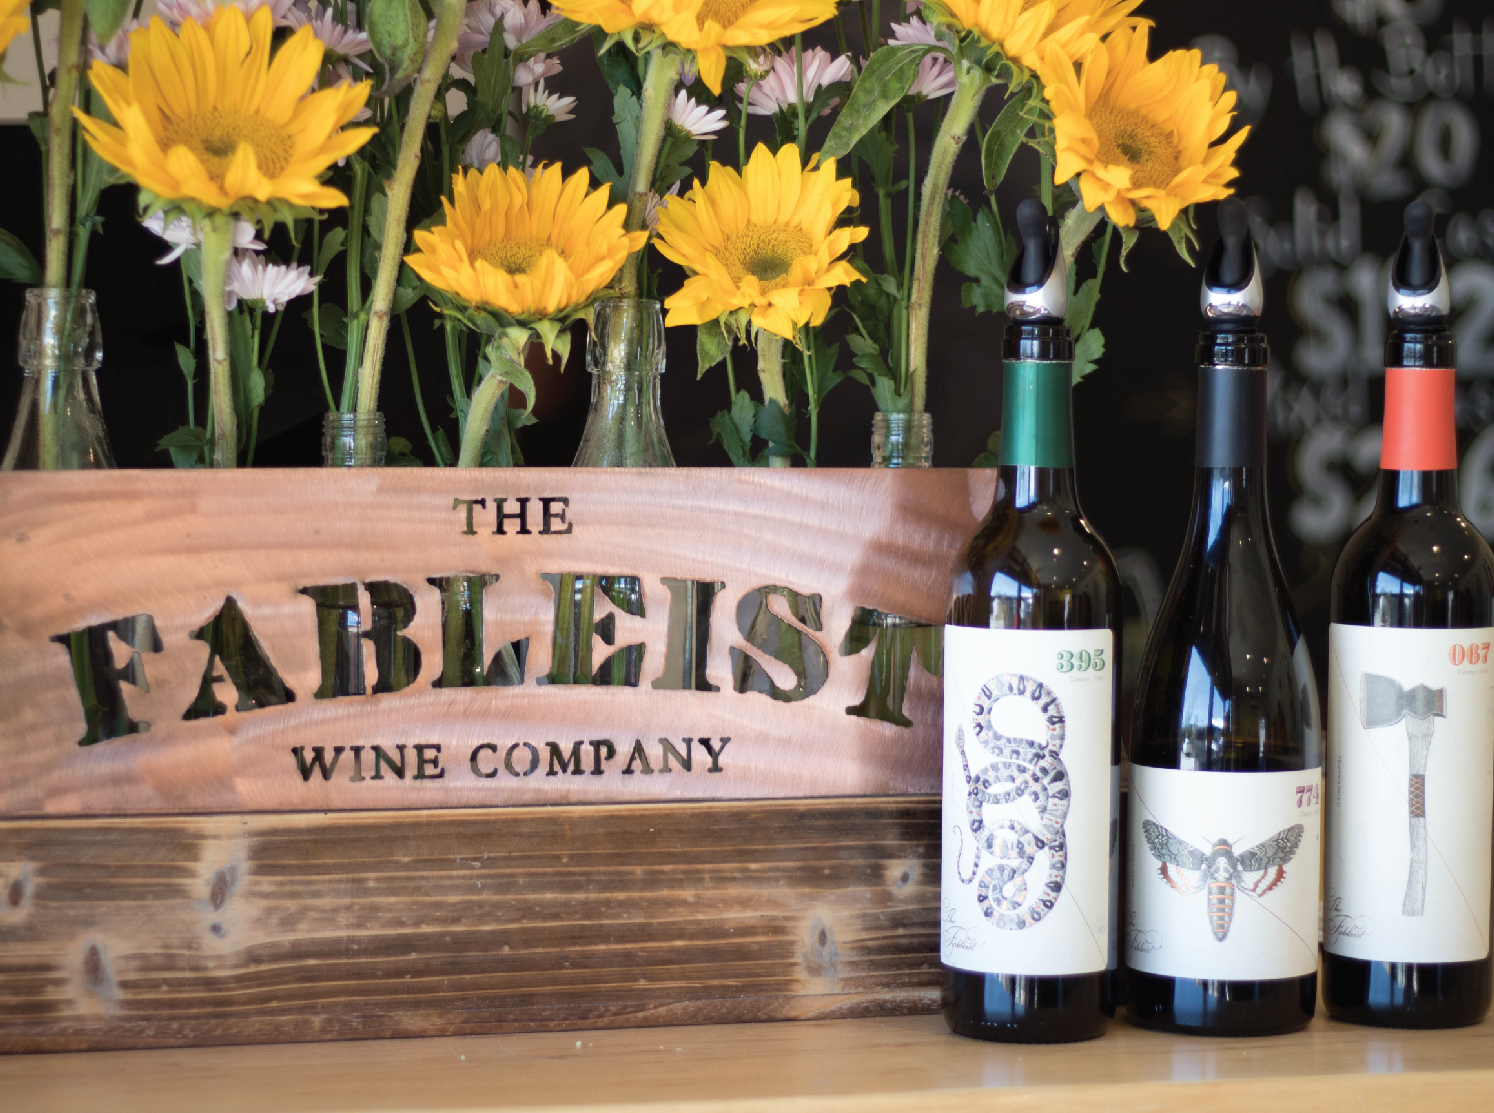 Three The Fableist Wines displayed in the Paso Robles tasting room.